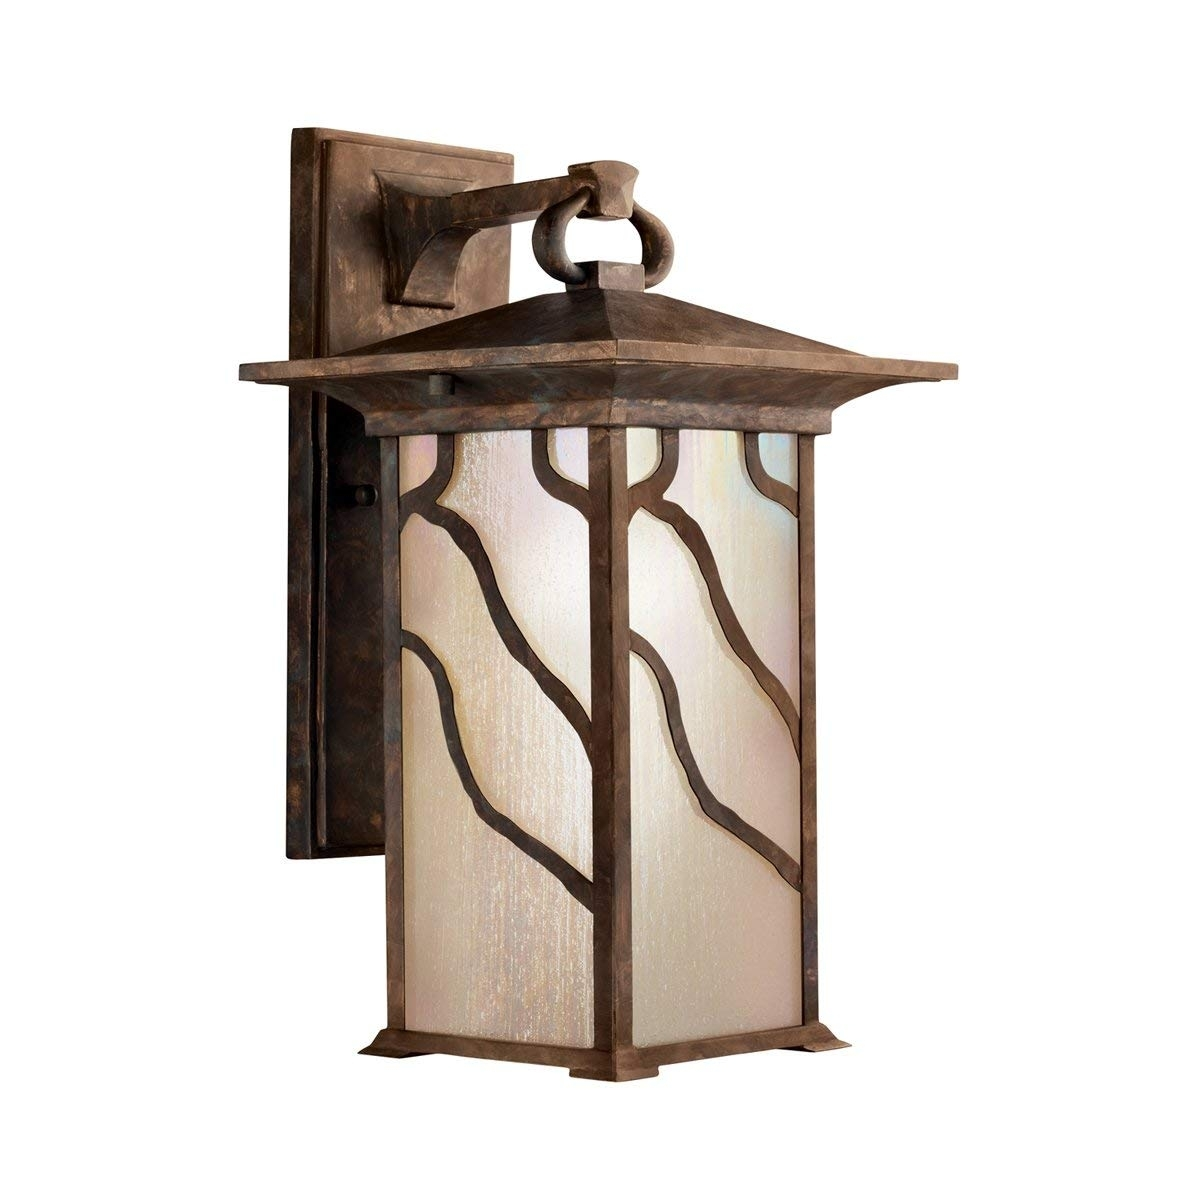 Kichler 9031Dco One Light Outdoor Wall Mount - Wall Porch Lights within Copper Outdoor Lanterns (Image 9 of 20)